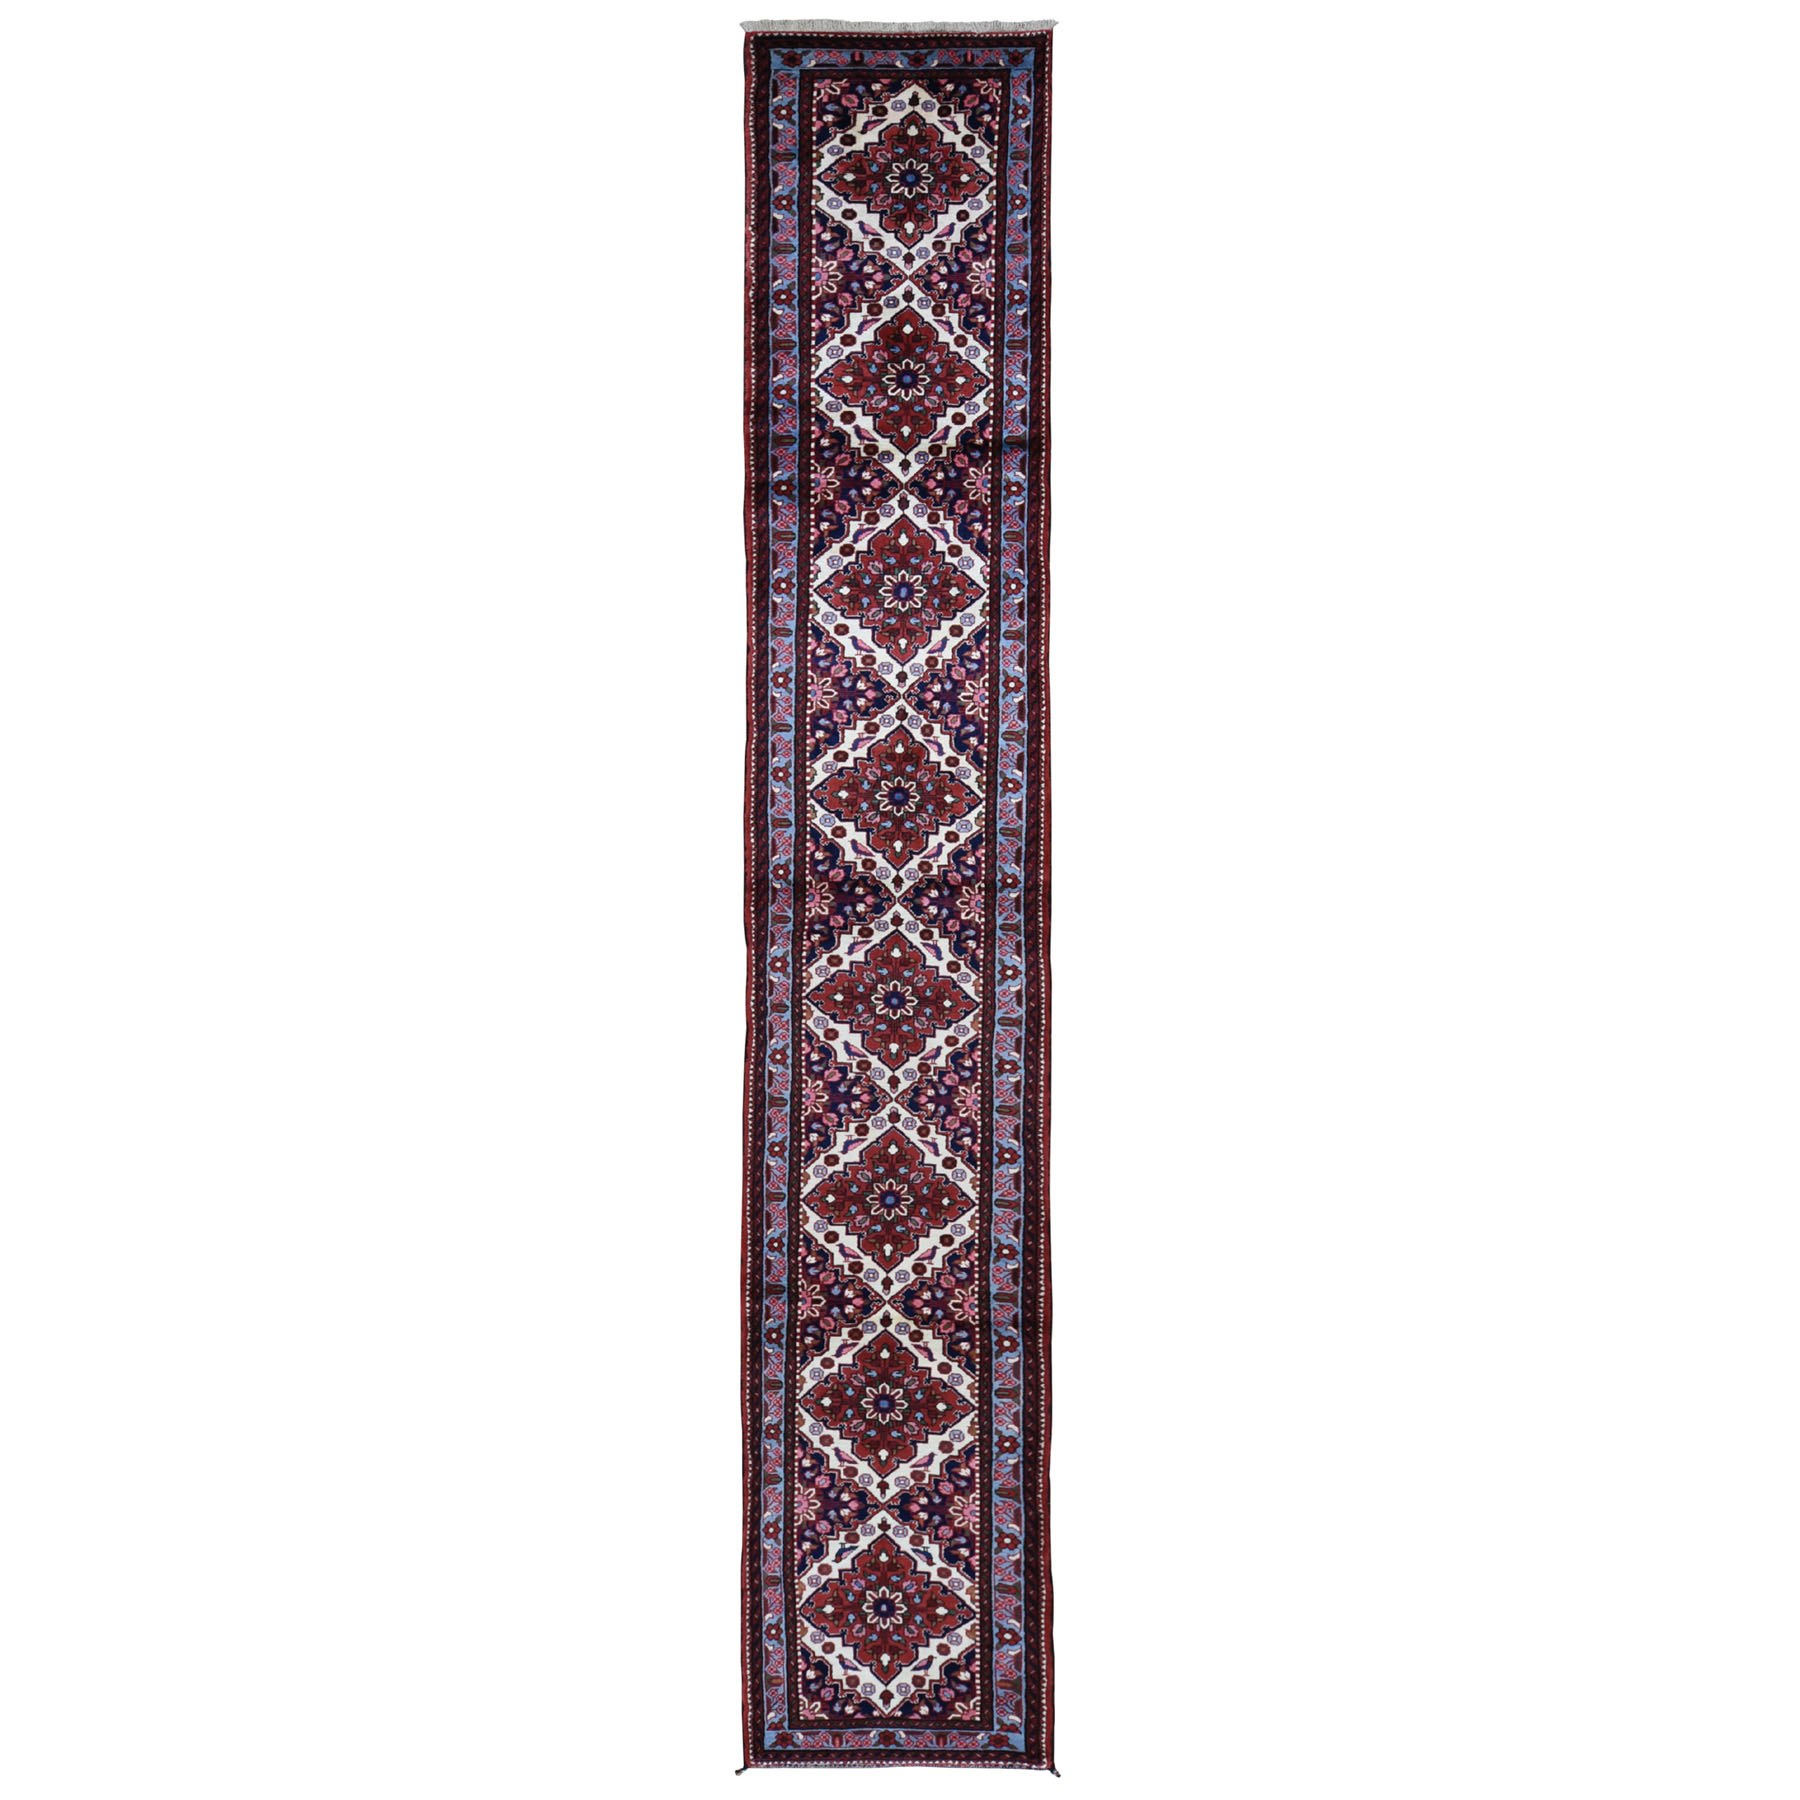 "2'5""x15'6"" New Persian Hamadan Narrow XL Runner Pure Wool Hand Knotted Oriental Rug"